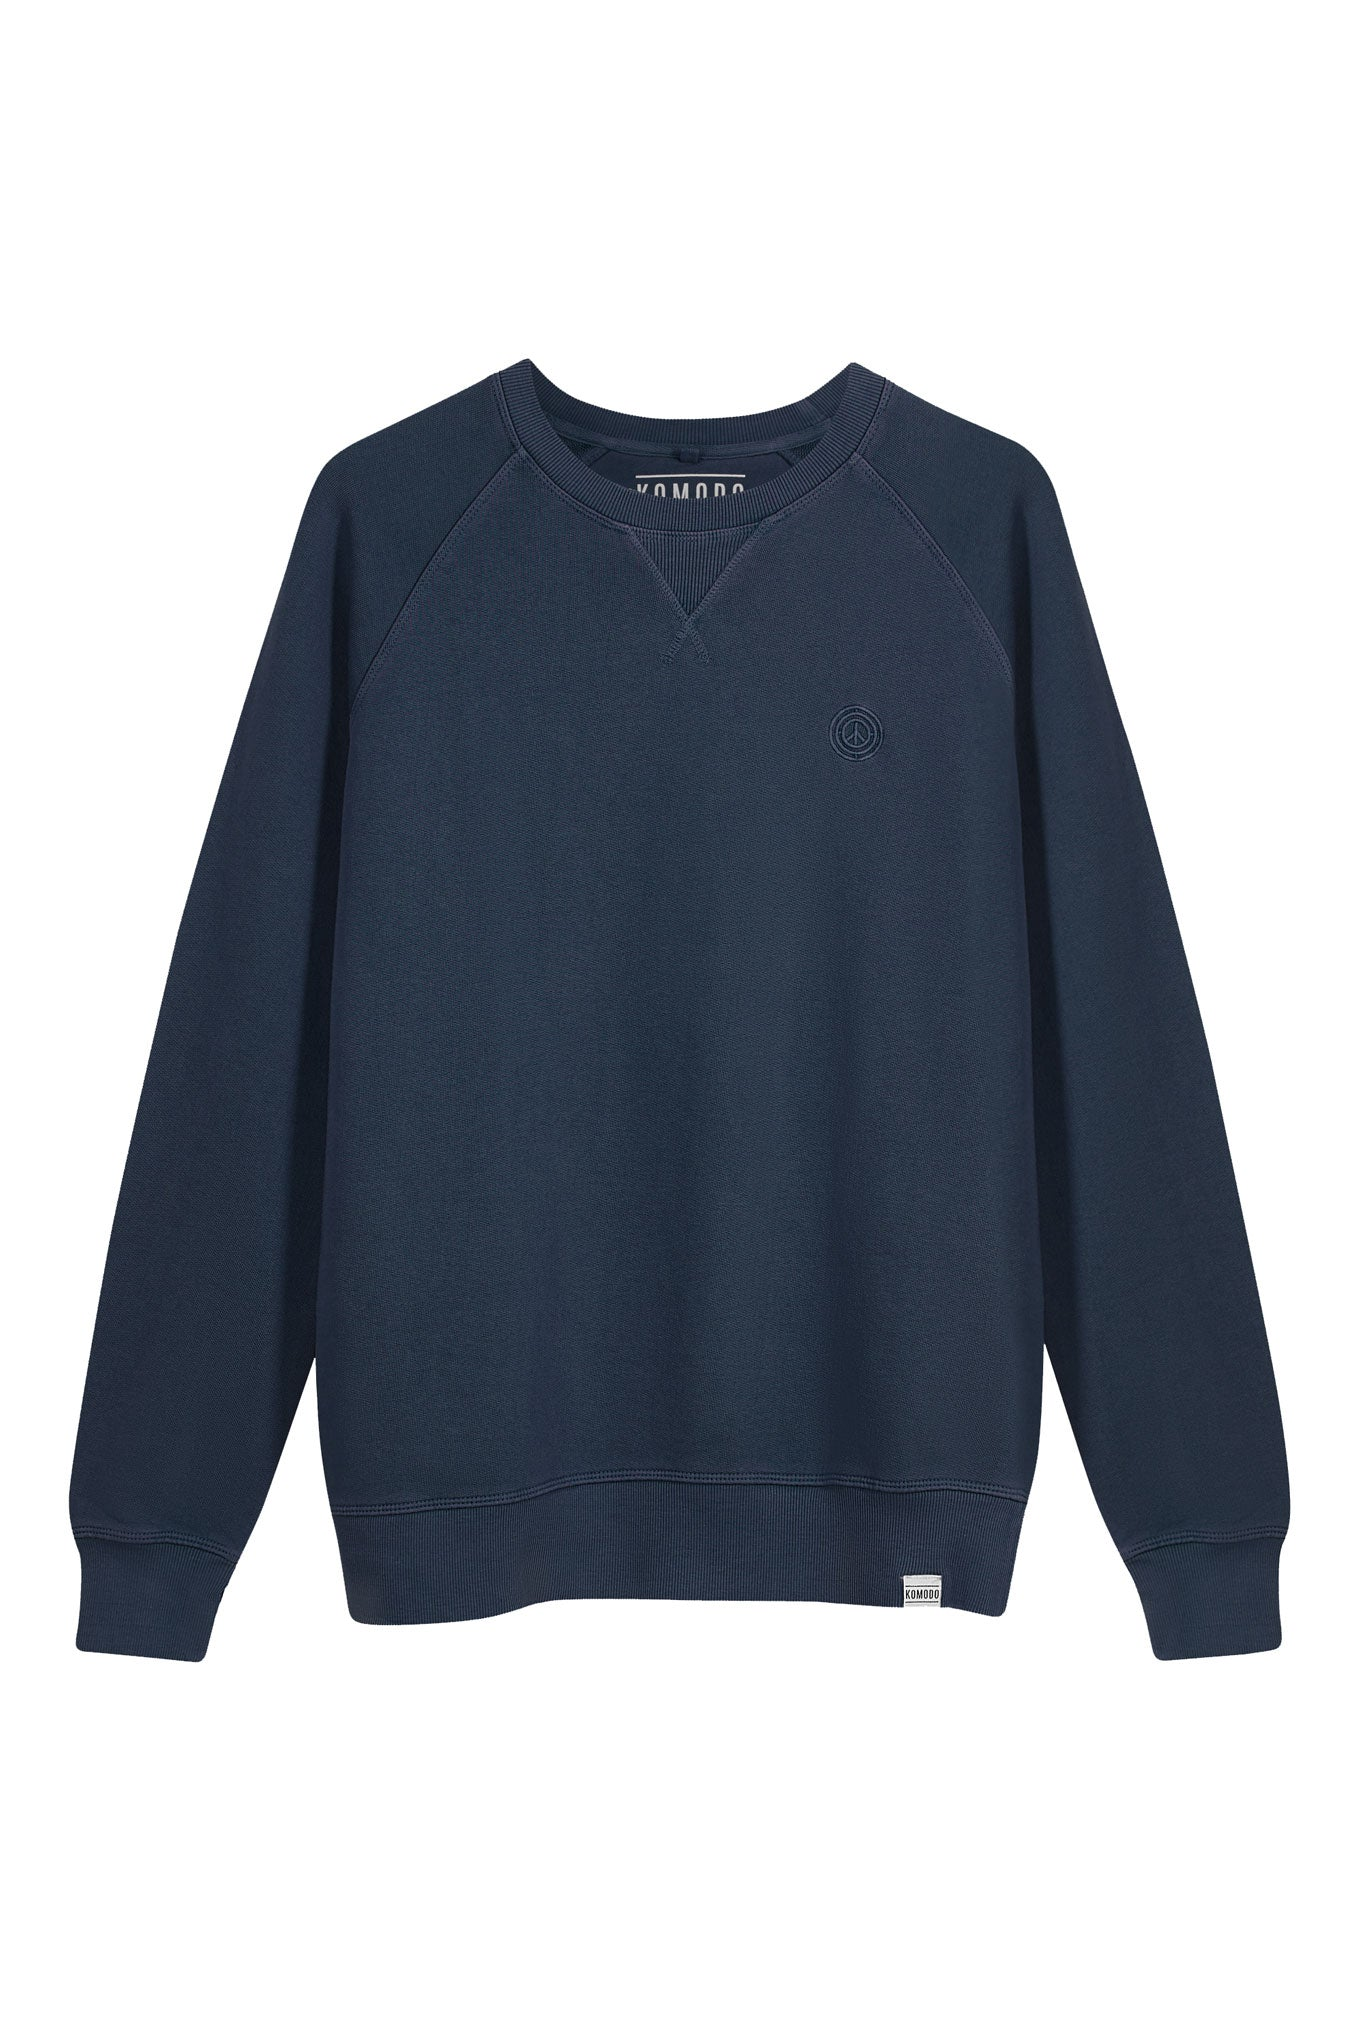 ANTON Womens Organic Cotton Crewneck Navy